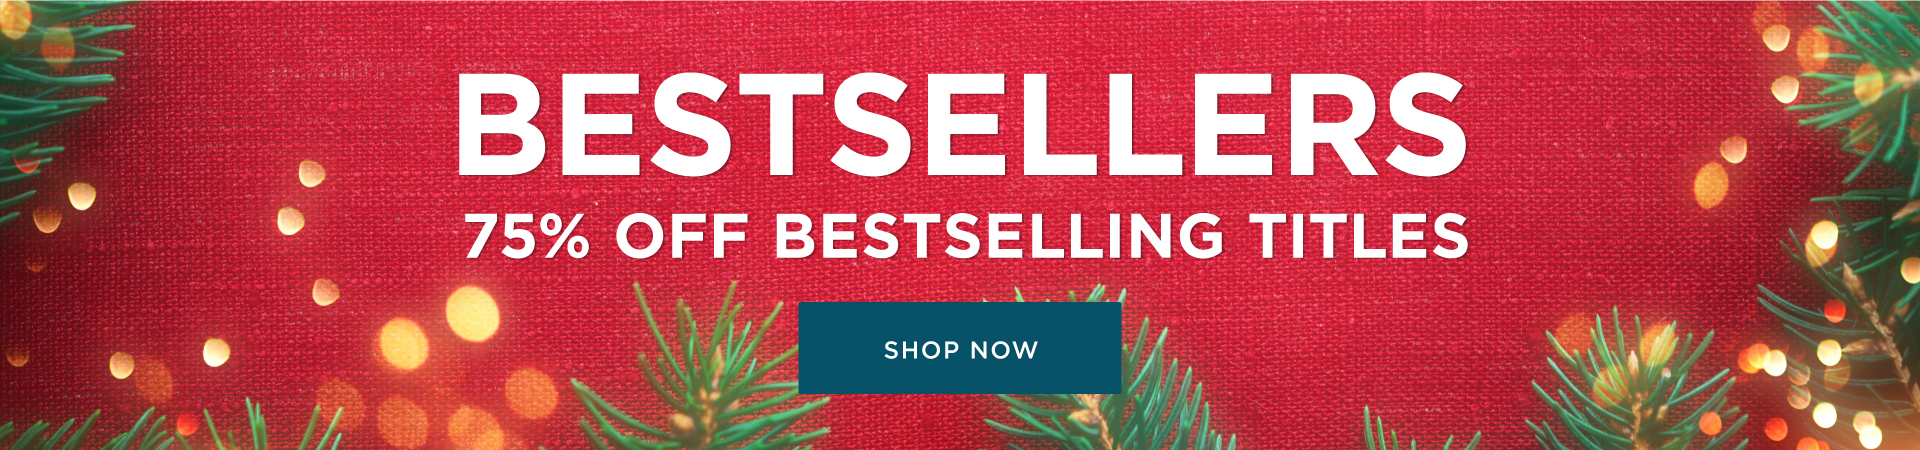 2016 Bestsellers Holiday Super Sale